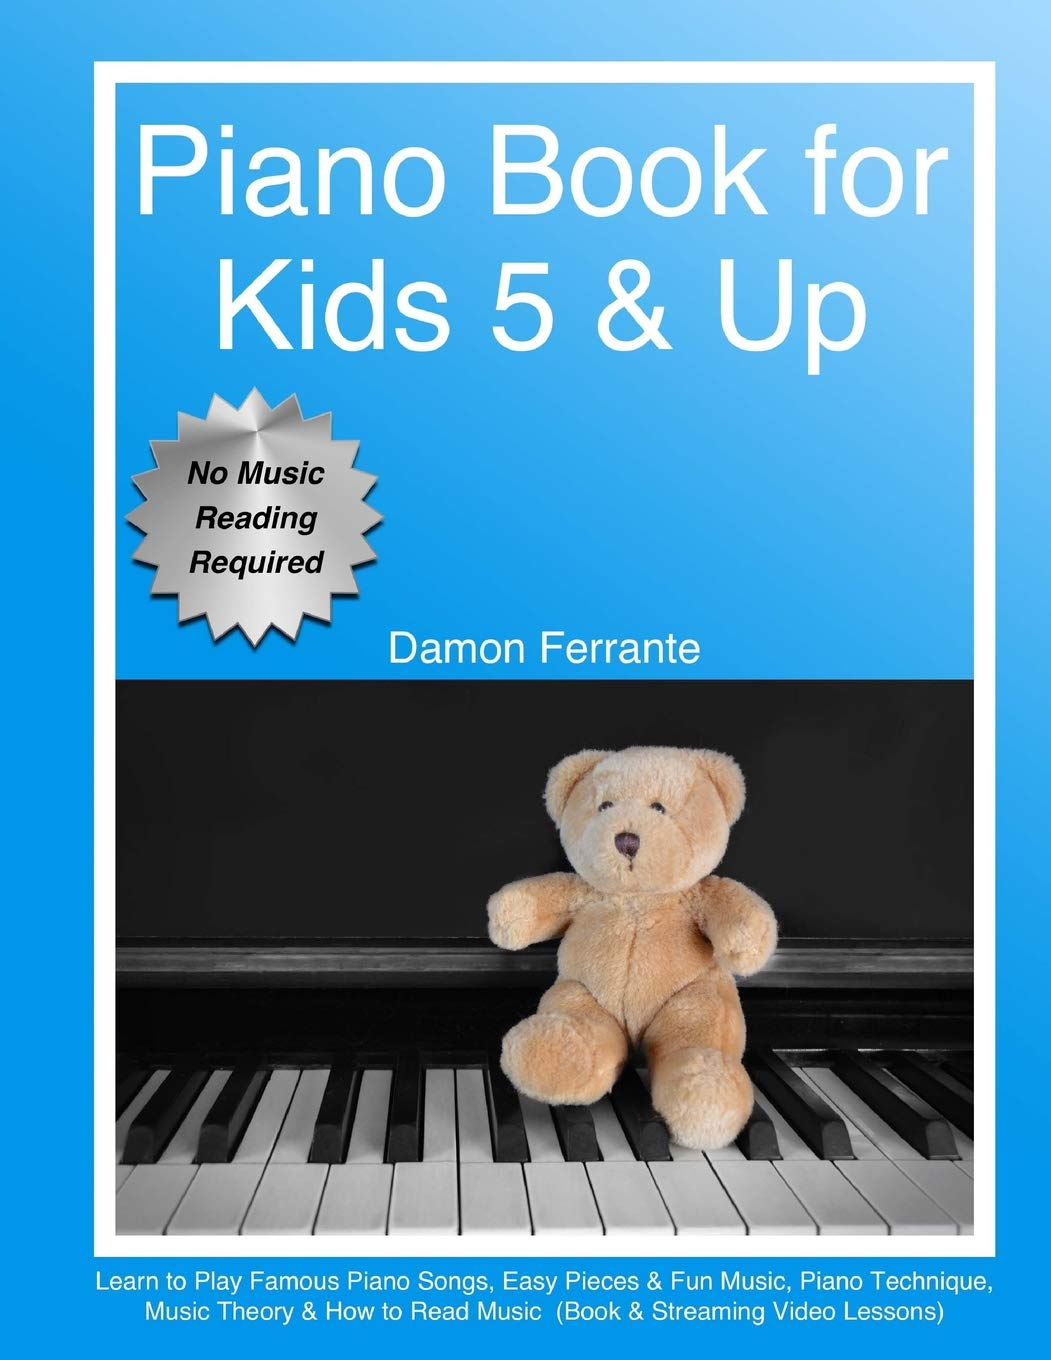 Piano Books For Kids 5 & Up